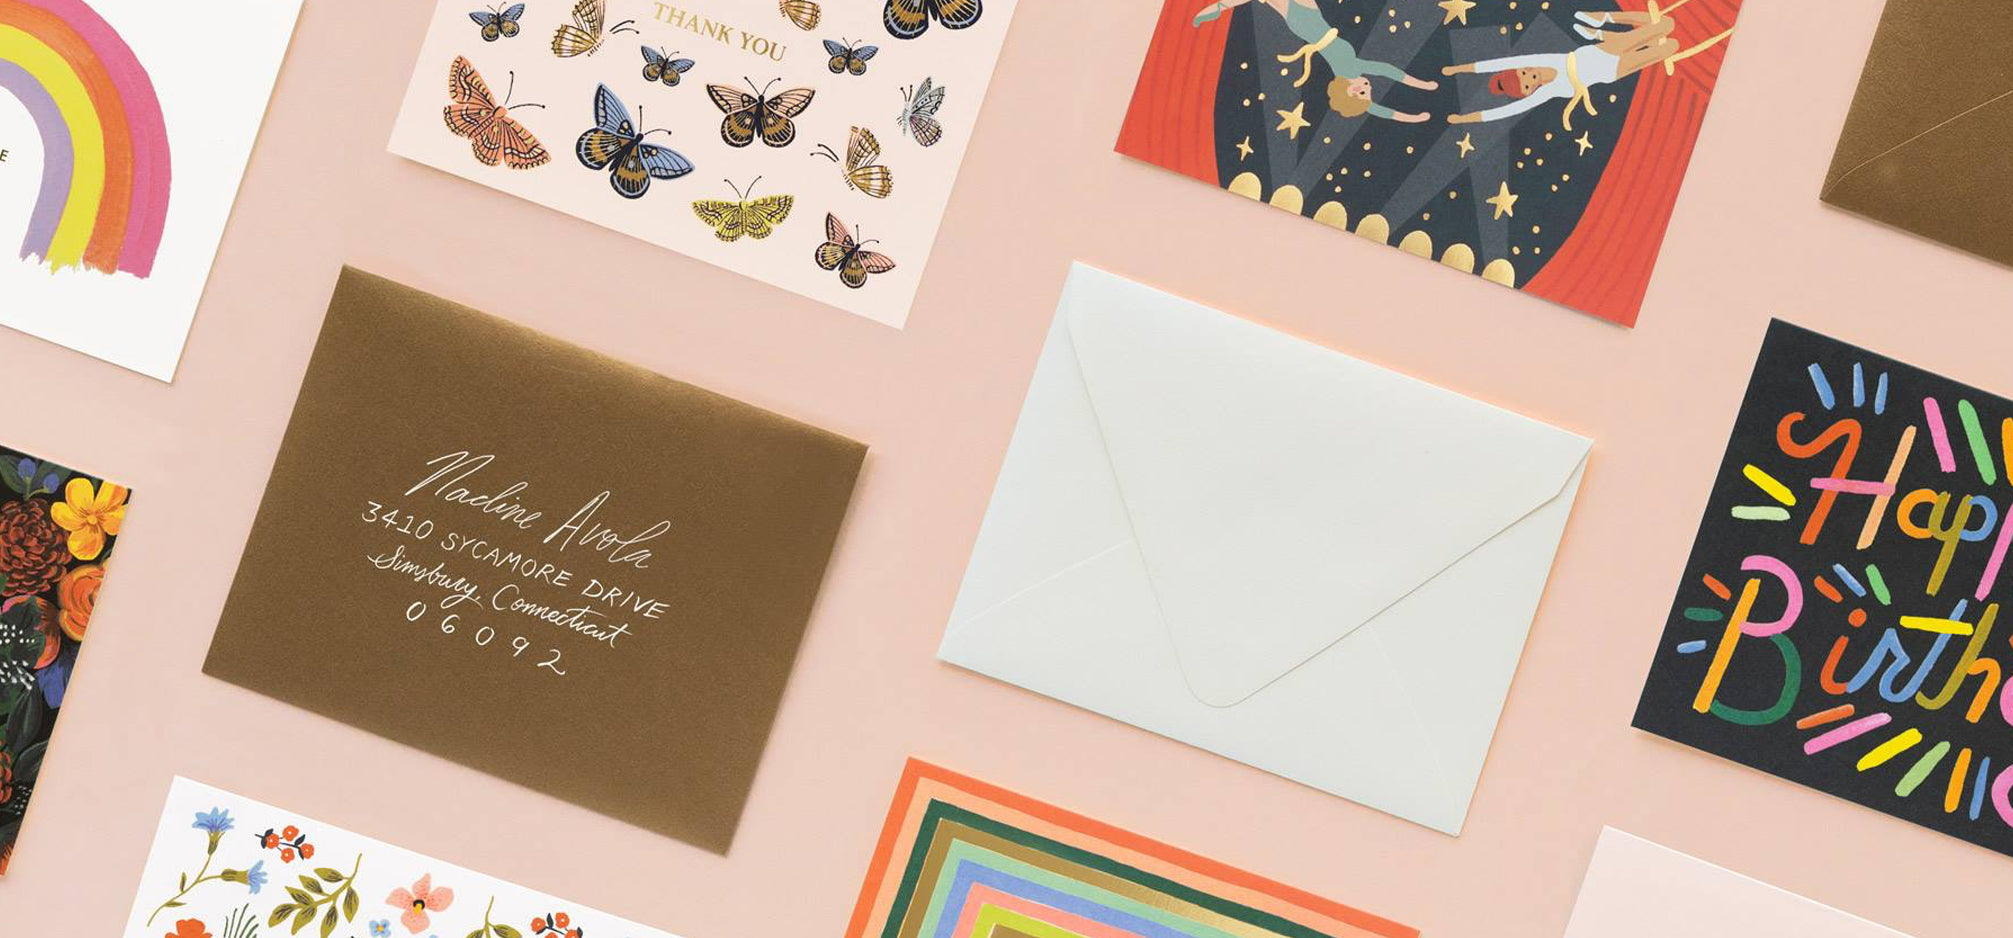 An assortment of greeting cards.